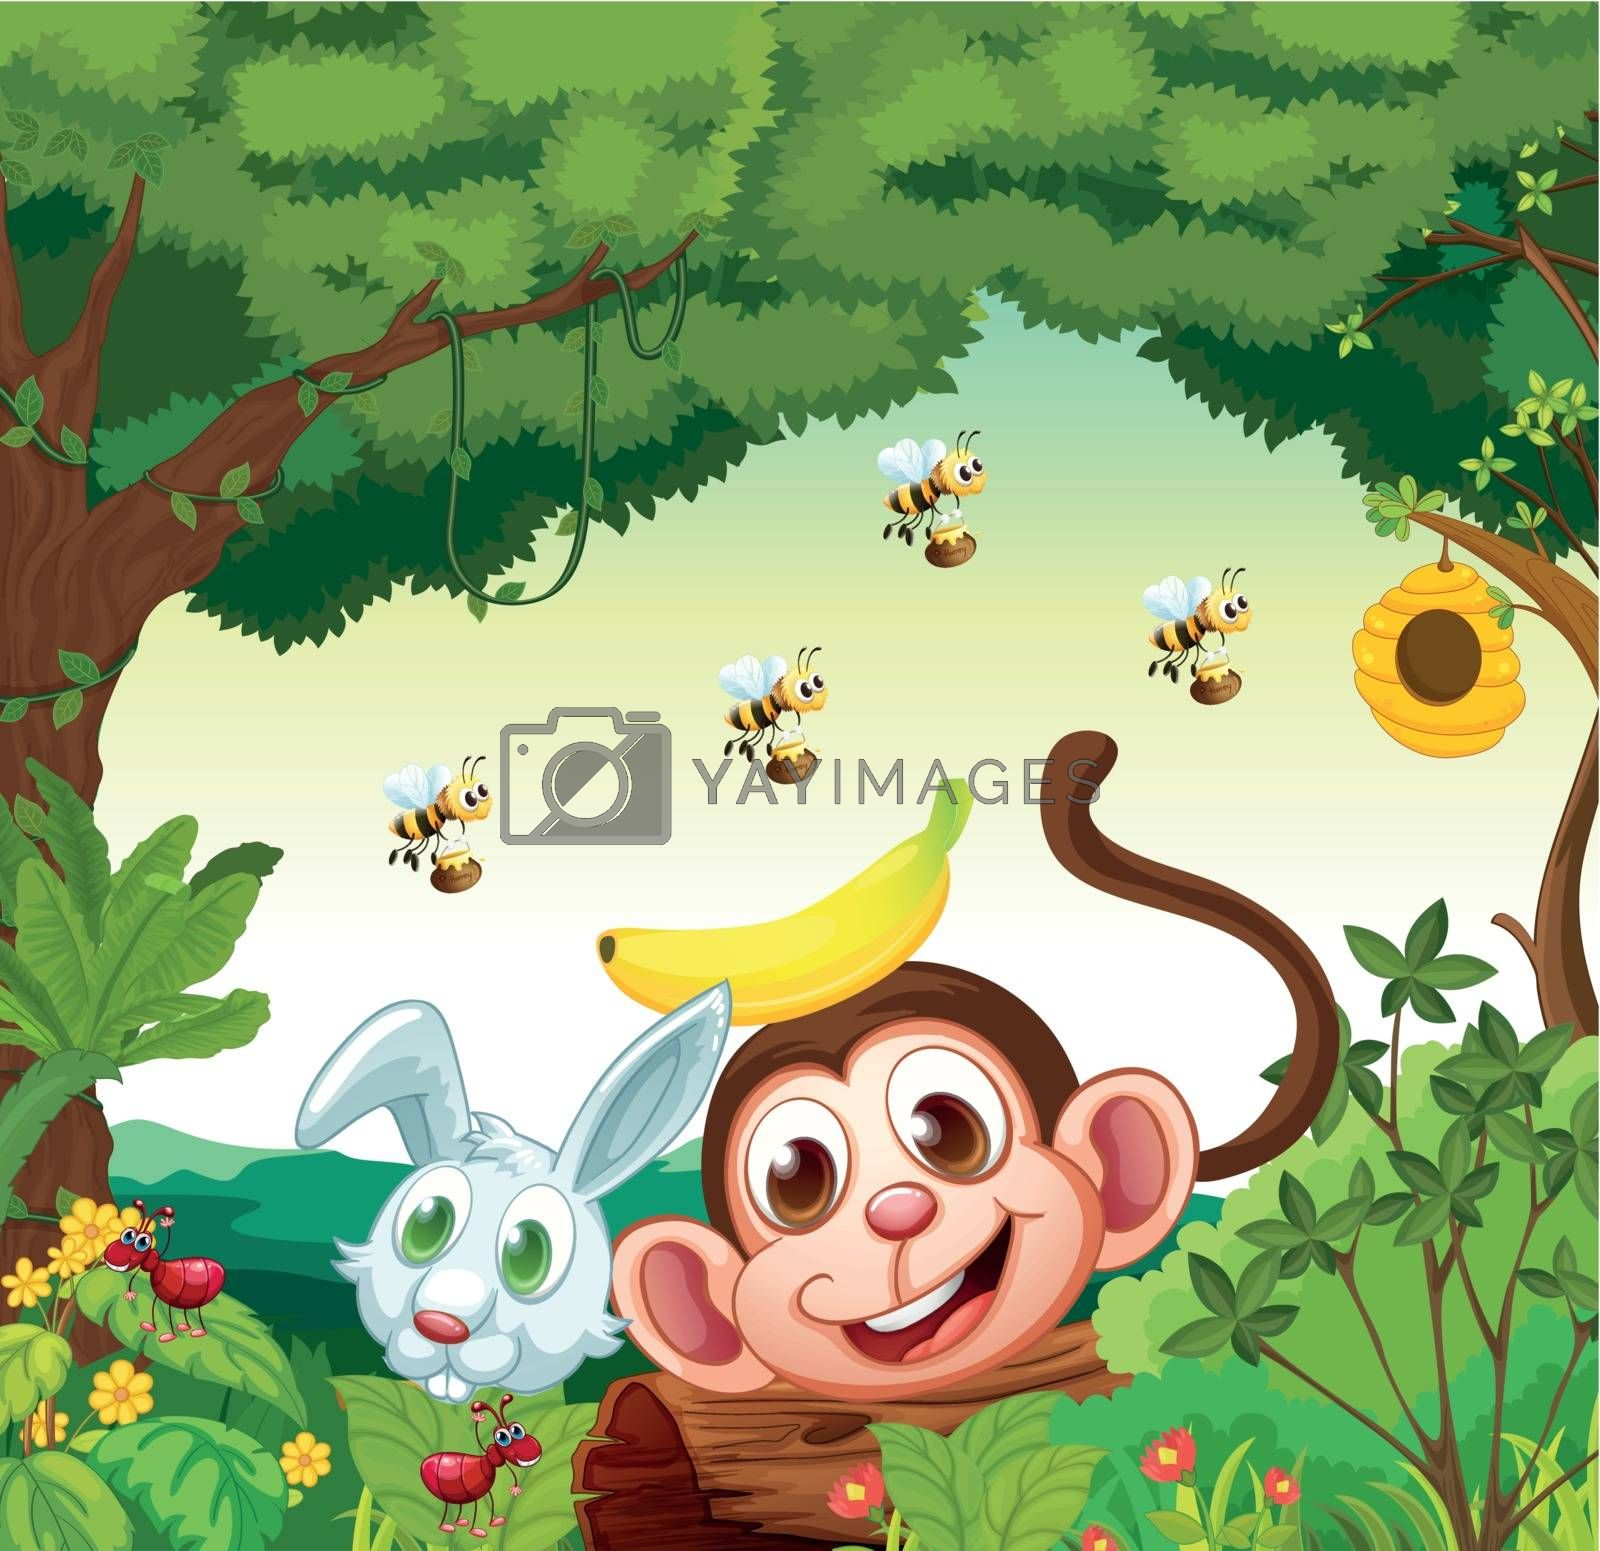 Illustration of a forest with happy animals